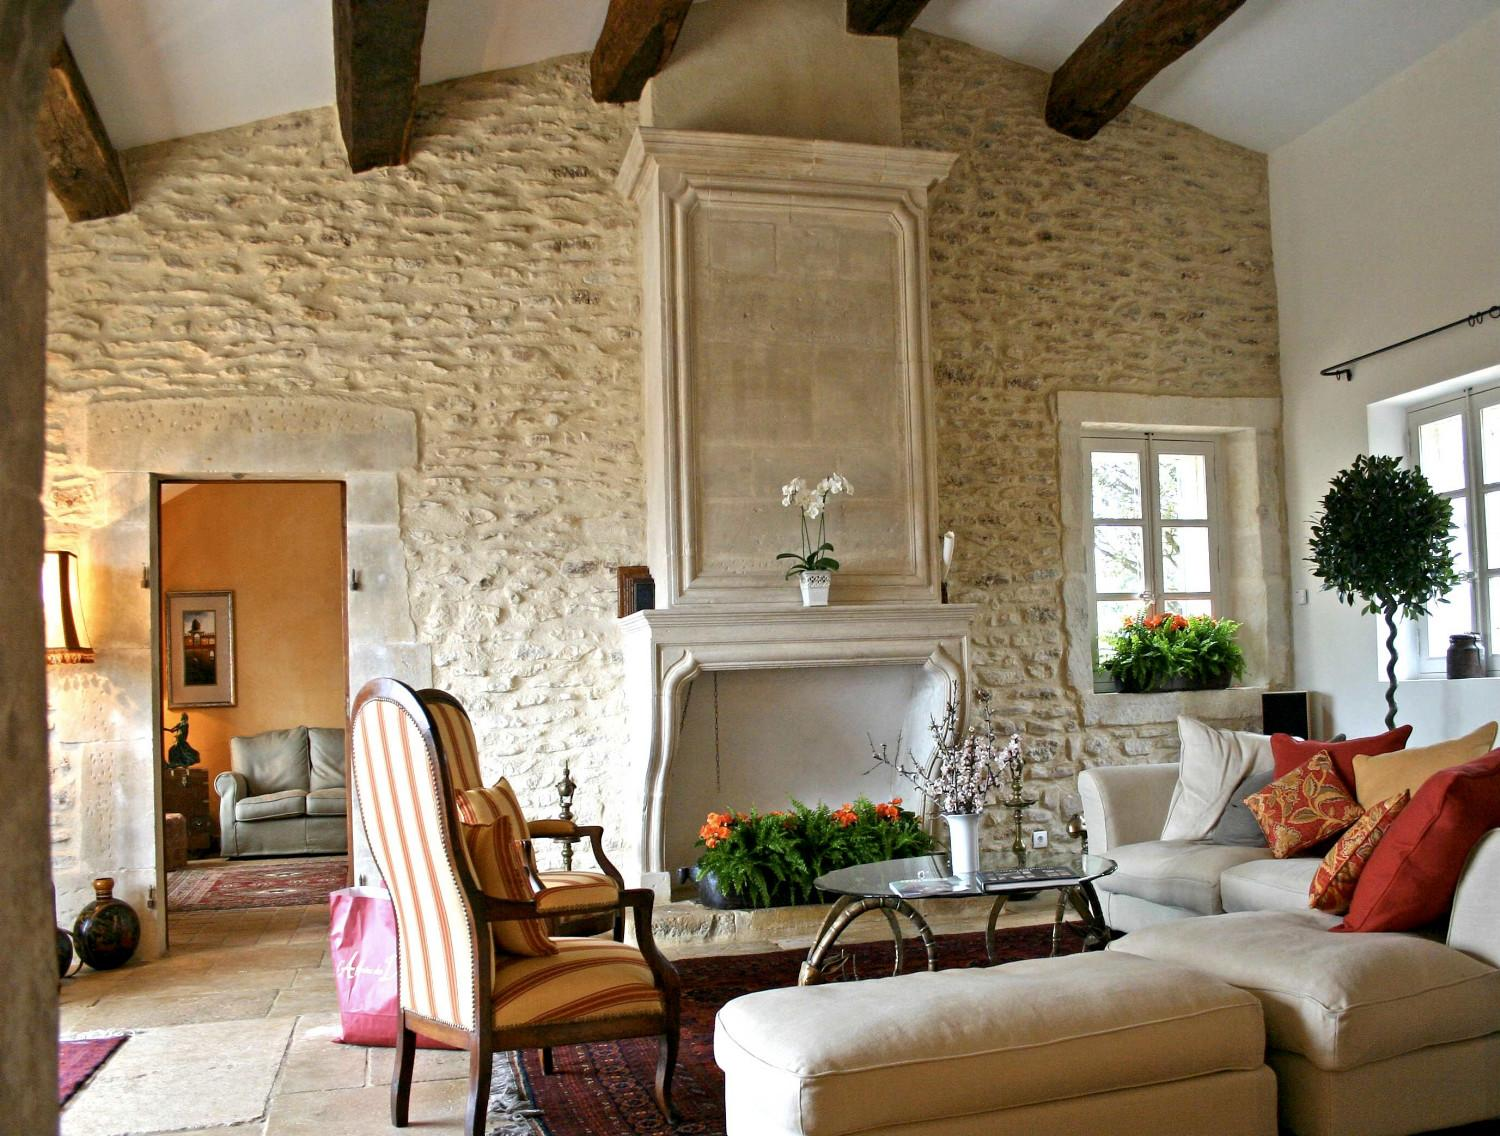 Newly built houses : A Provencal Mas made of stone - A. Nelson ...